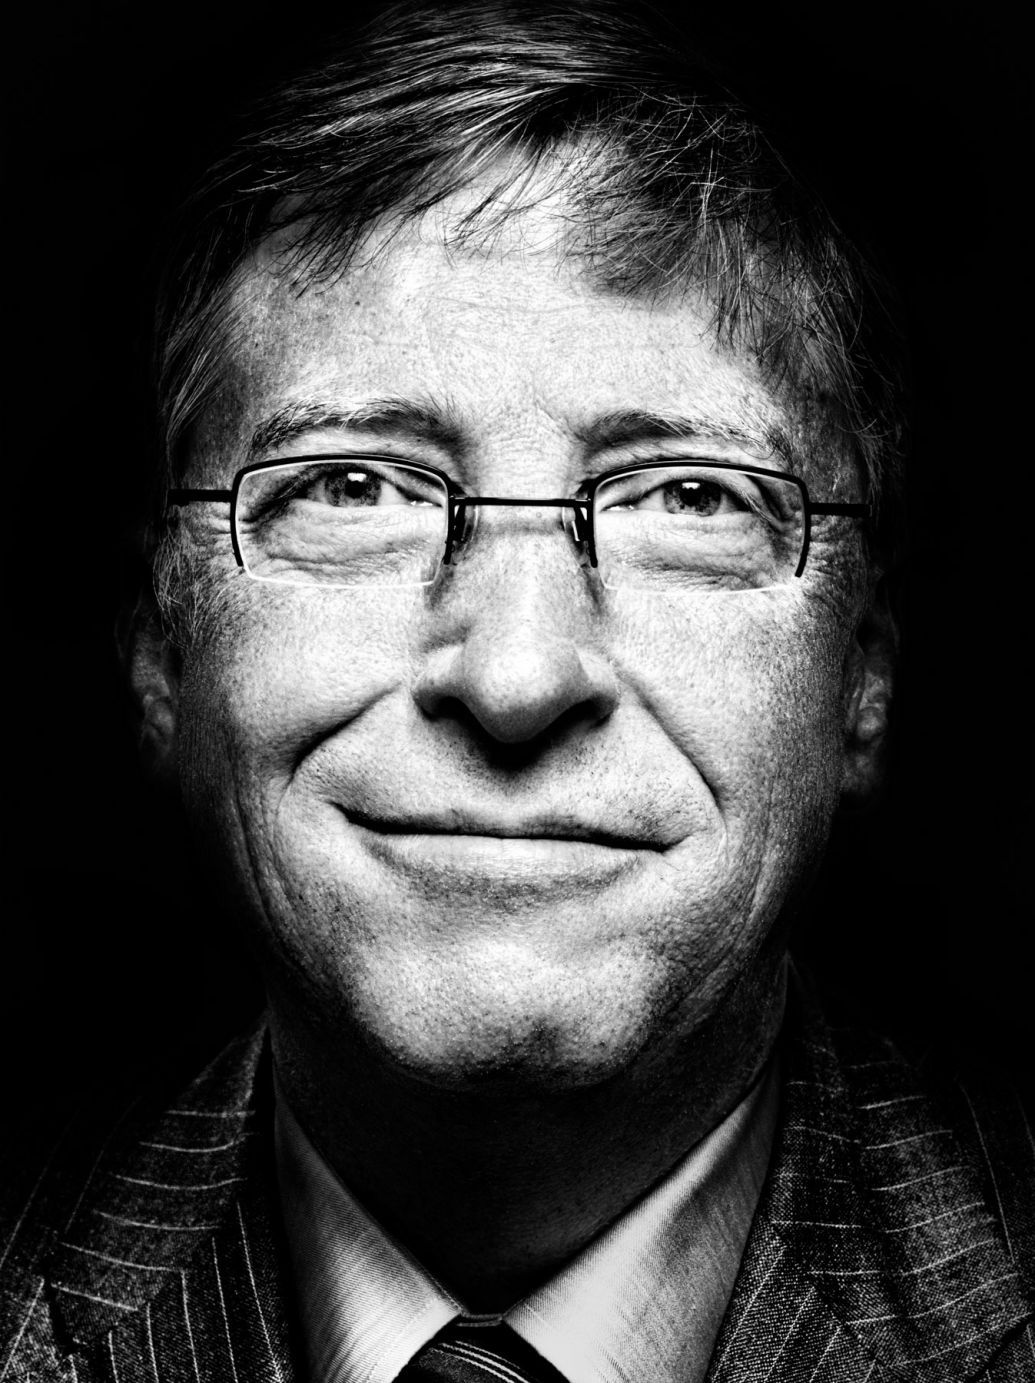 Bill Gates 1955 American Business Magnate Philanthropist